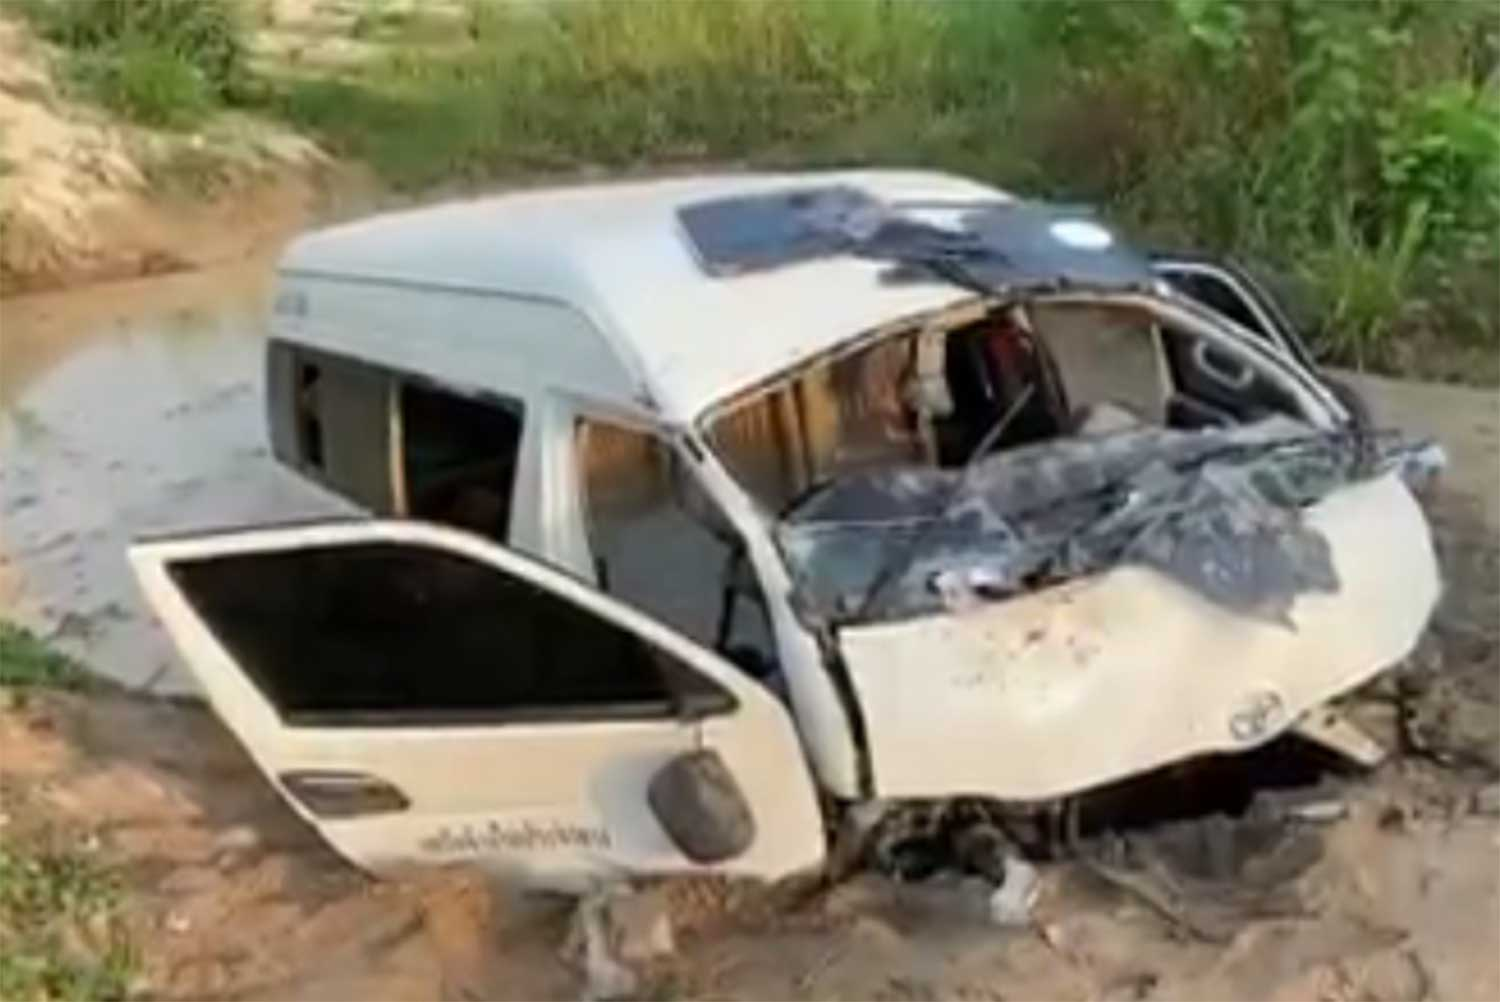 A passenger van rests in a swamp in Nikhom Phatthana district of Rayong, following an accident in which two Cambodian women died. (Screenshot from video clip posted by @ThaiRescueNews2 Facebook page)